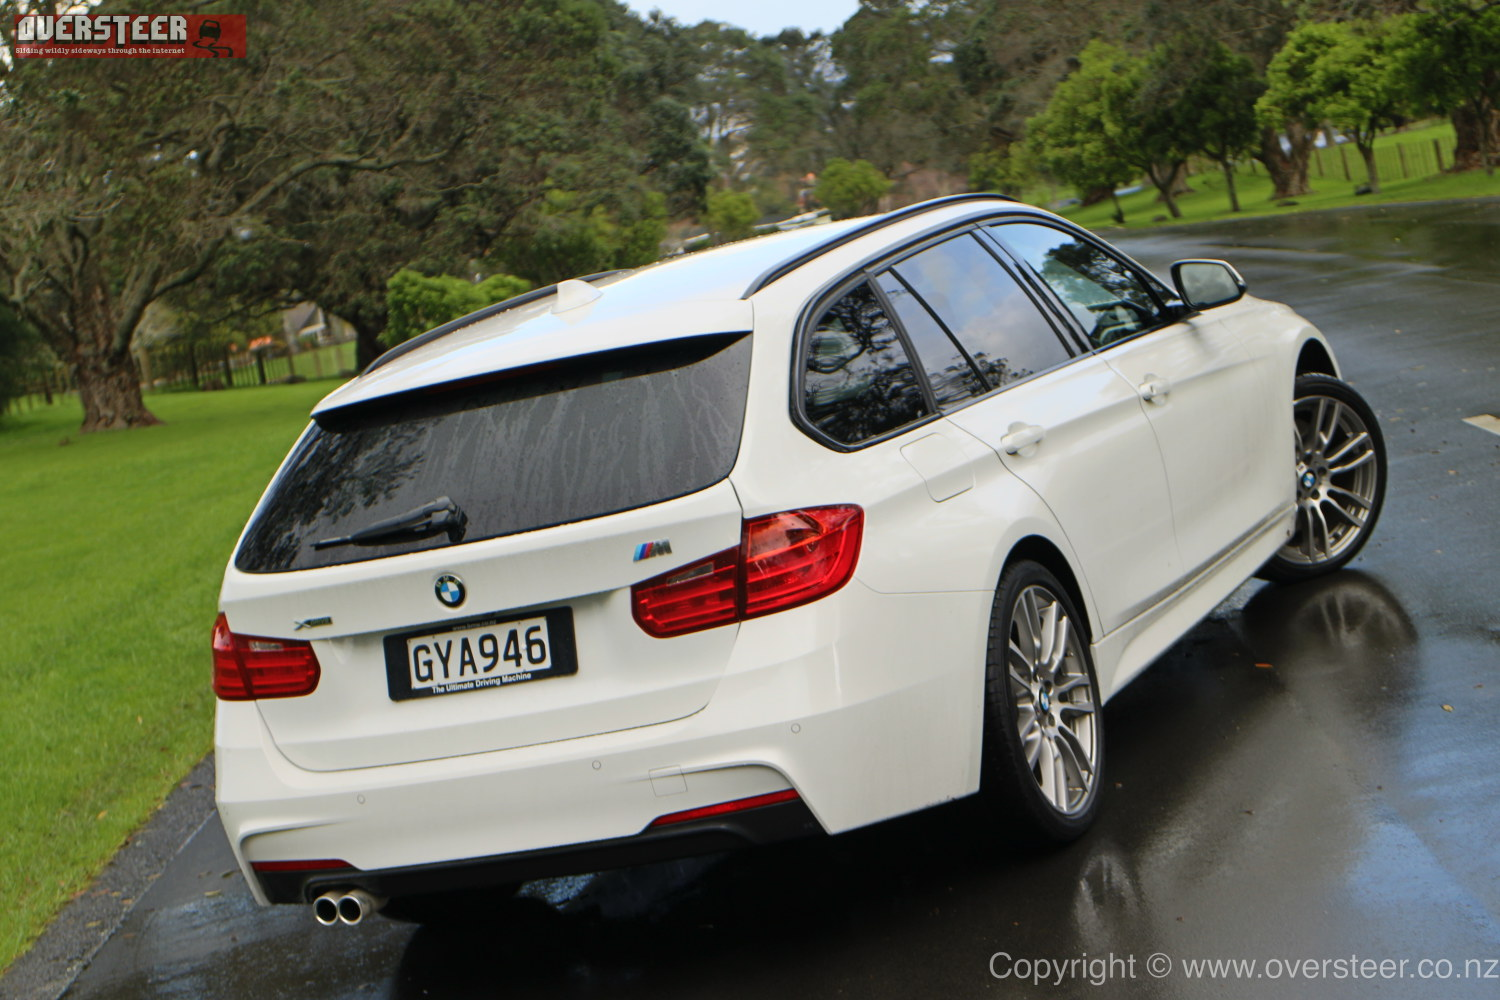 ROAD TEST BMW D Touring XDrive OVERSTEER - 330d bmw